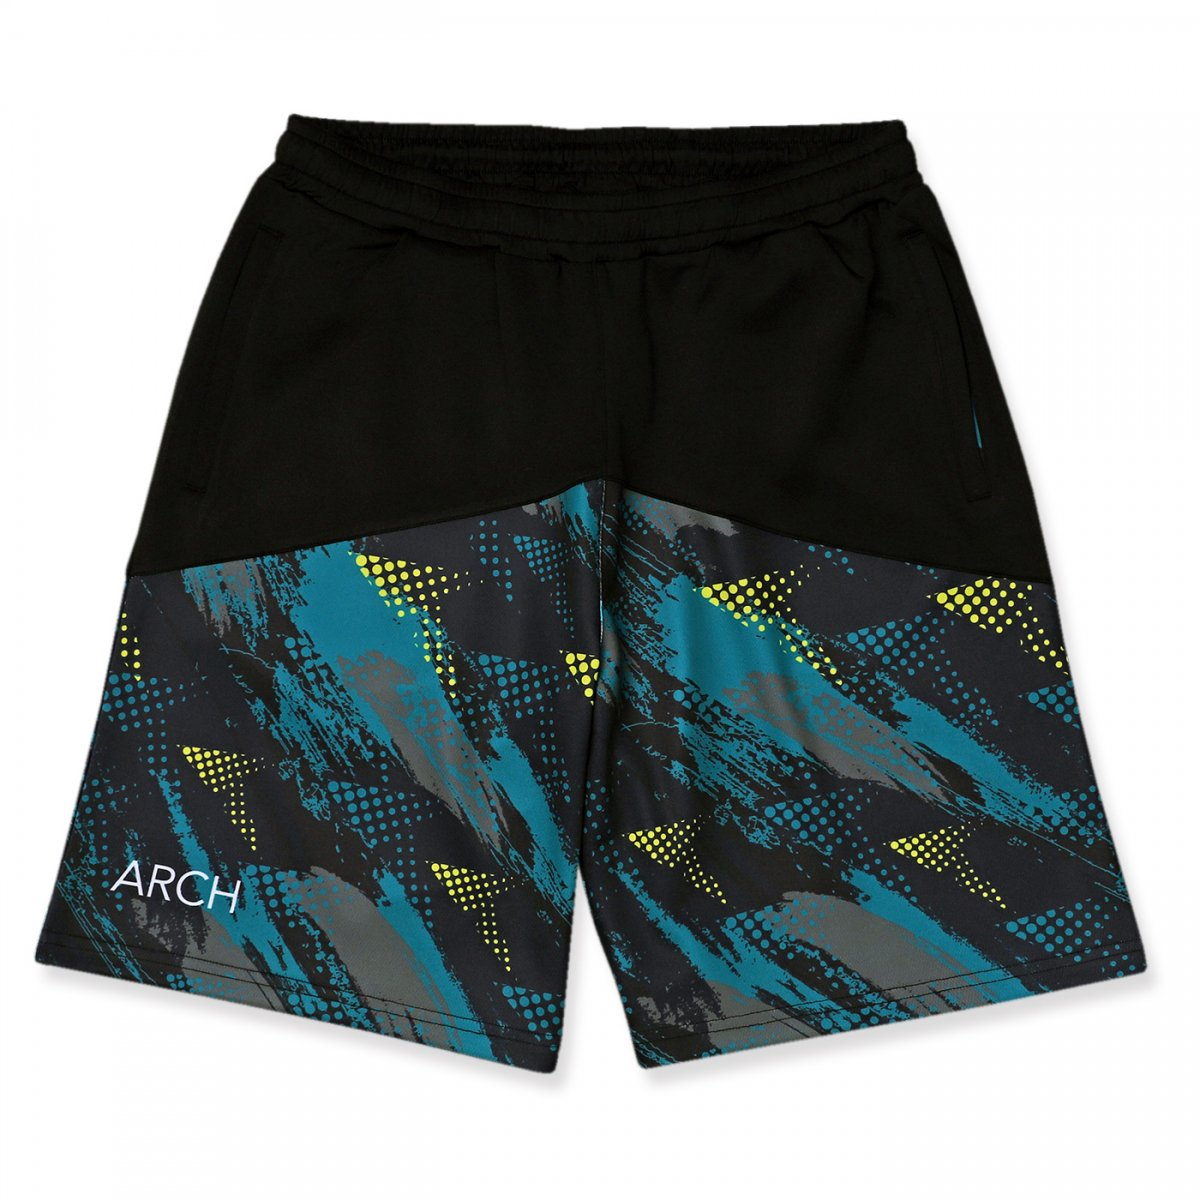 updraft shorts 【black/teal】